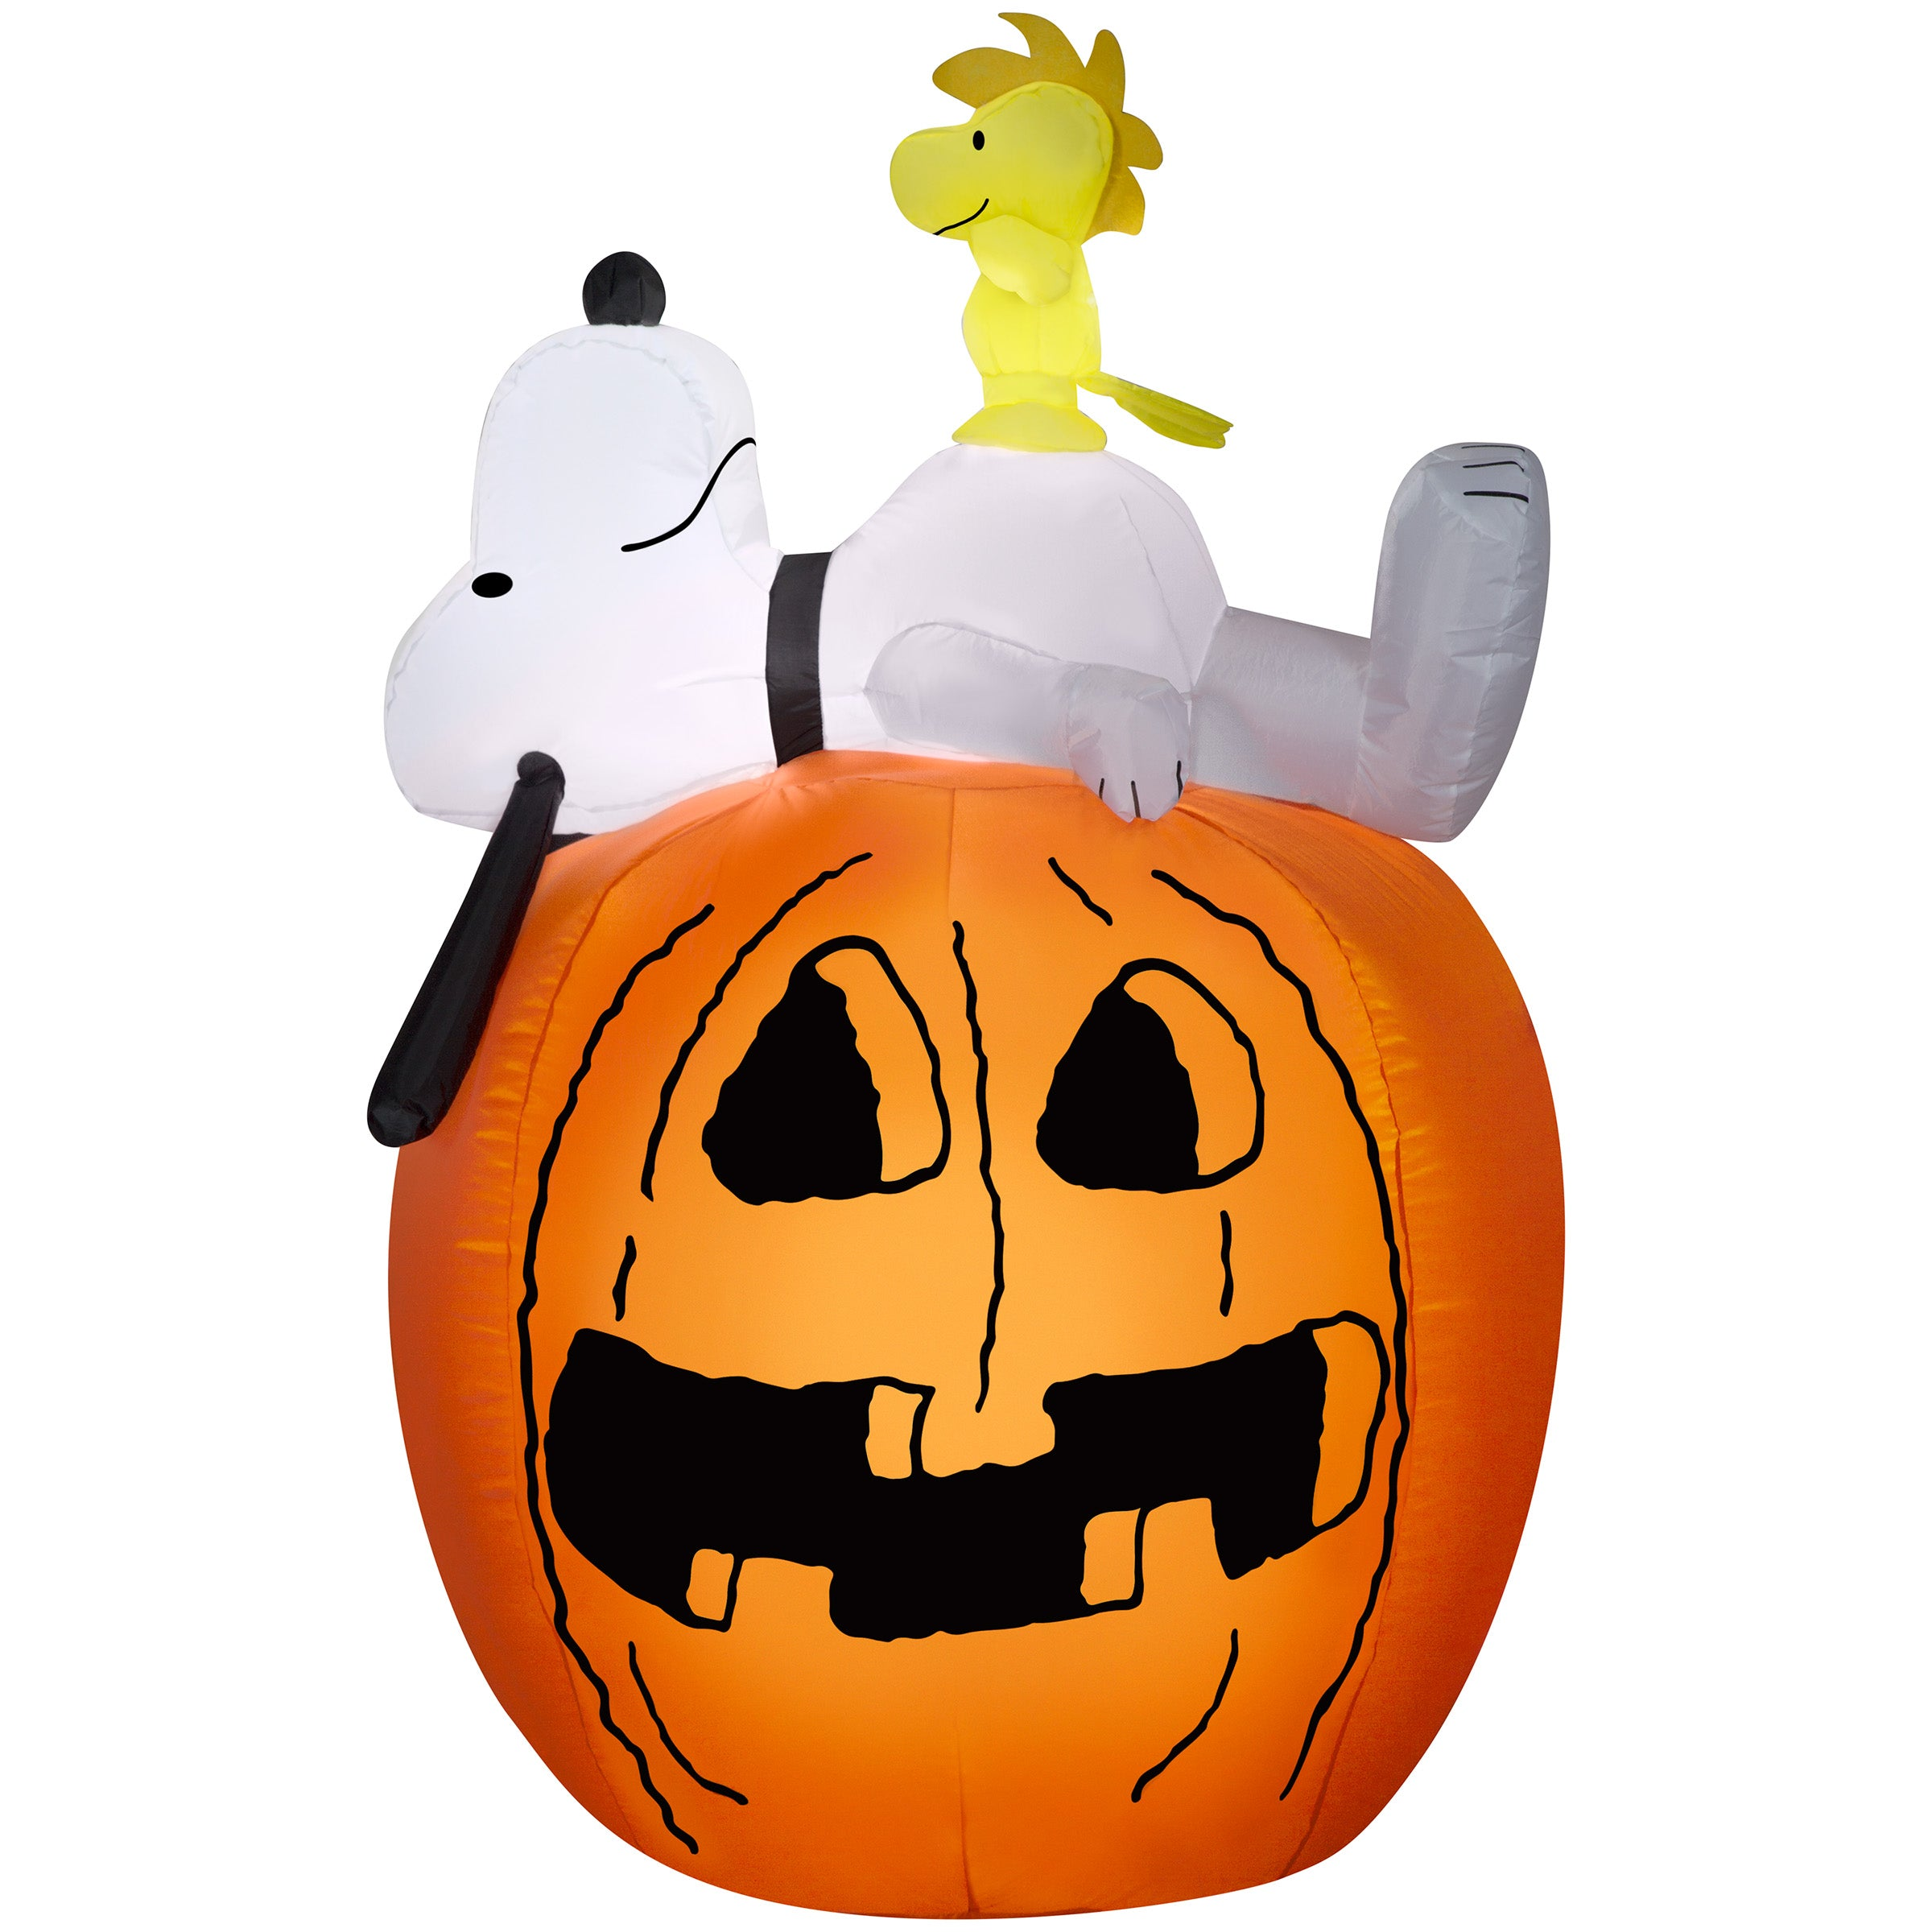 Gemmy Inflatable Halloween Yard Decoration Snoopy Woodstock Pumpkin Lighted Airblown 4.5 Foot